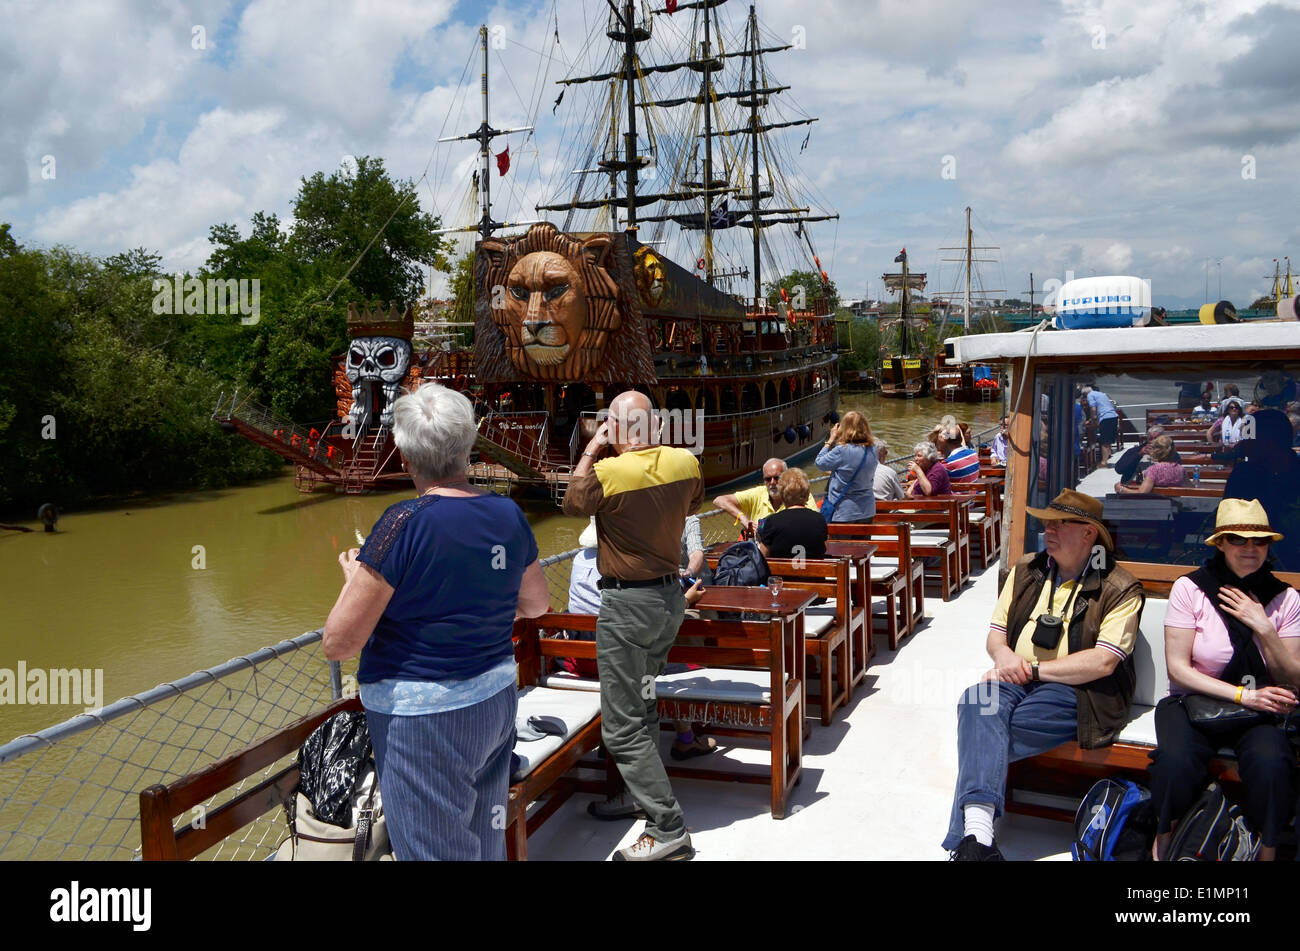 Boat trip with lunch aboard, way to spend time in Antalya. Boats are decorated as Pirate Ships. - Stock Image